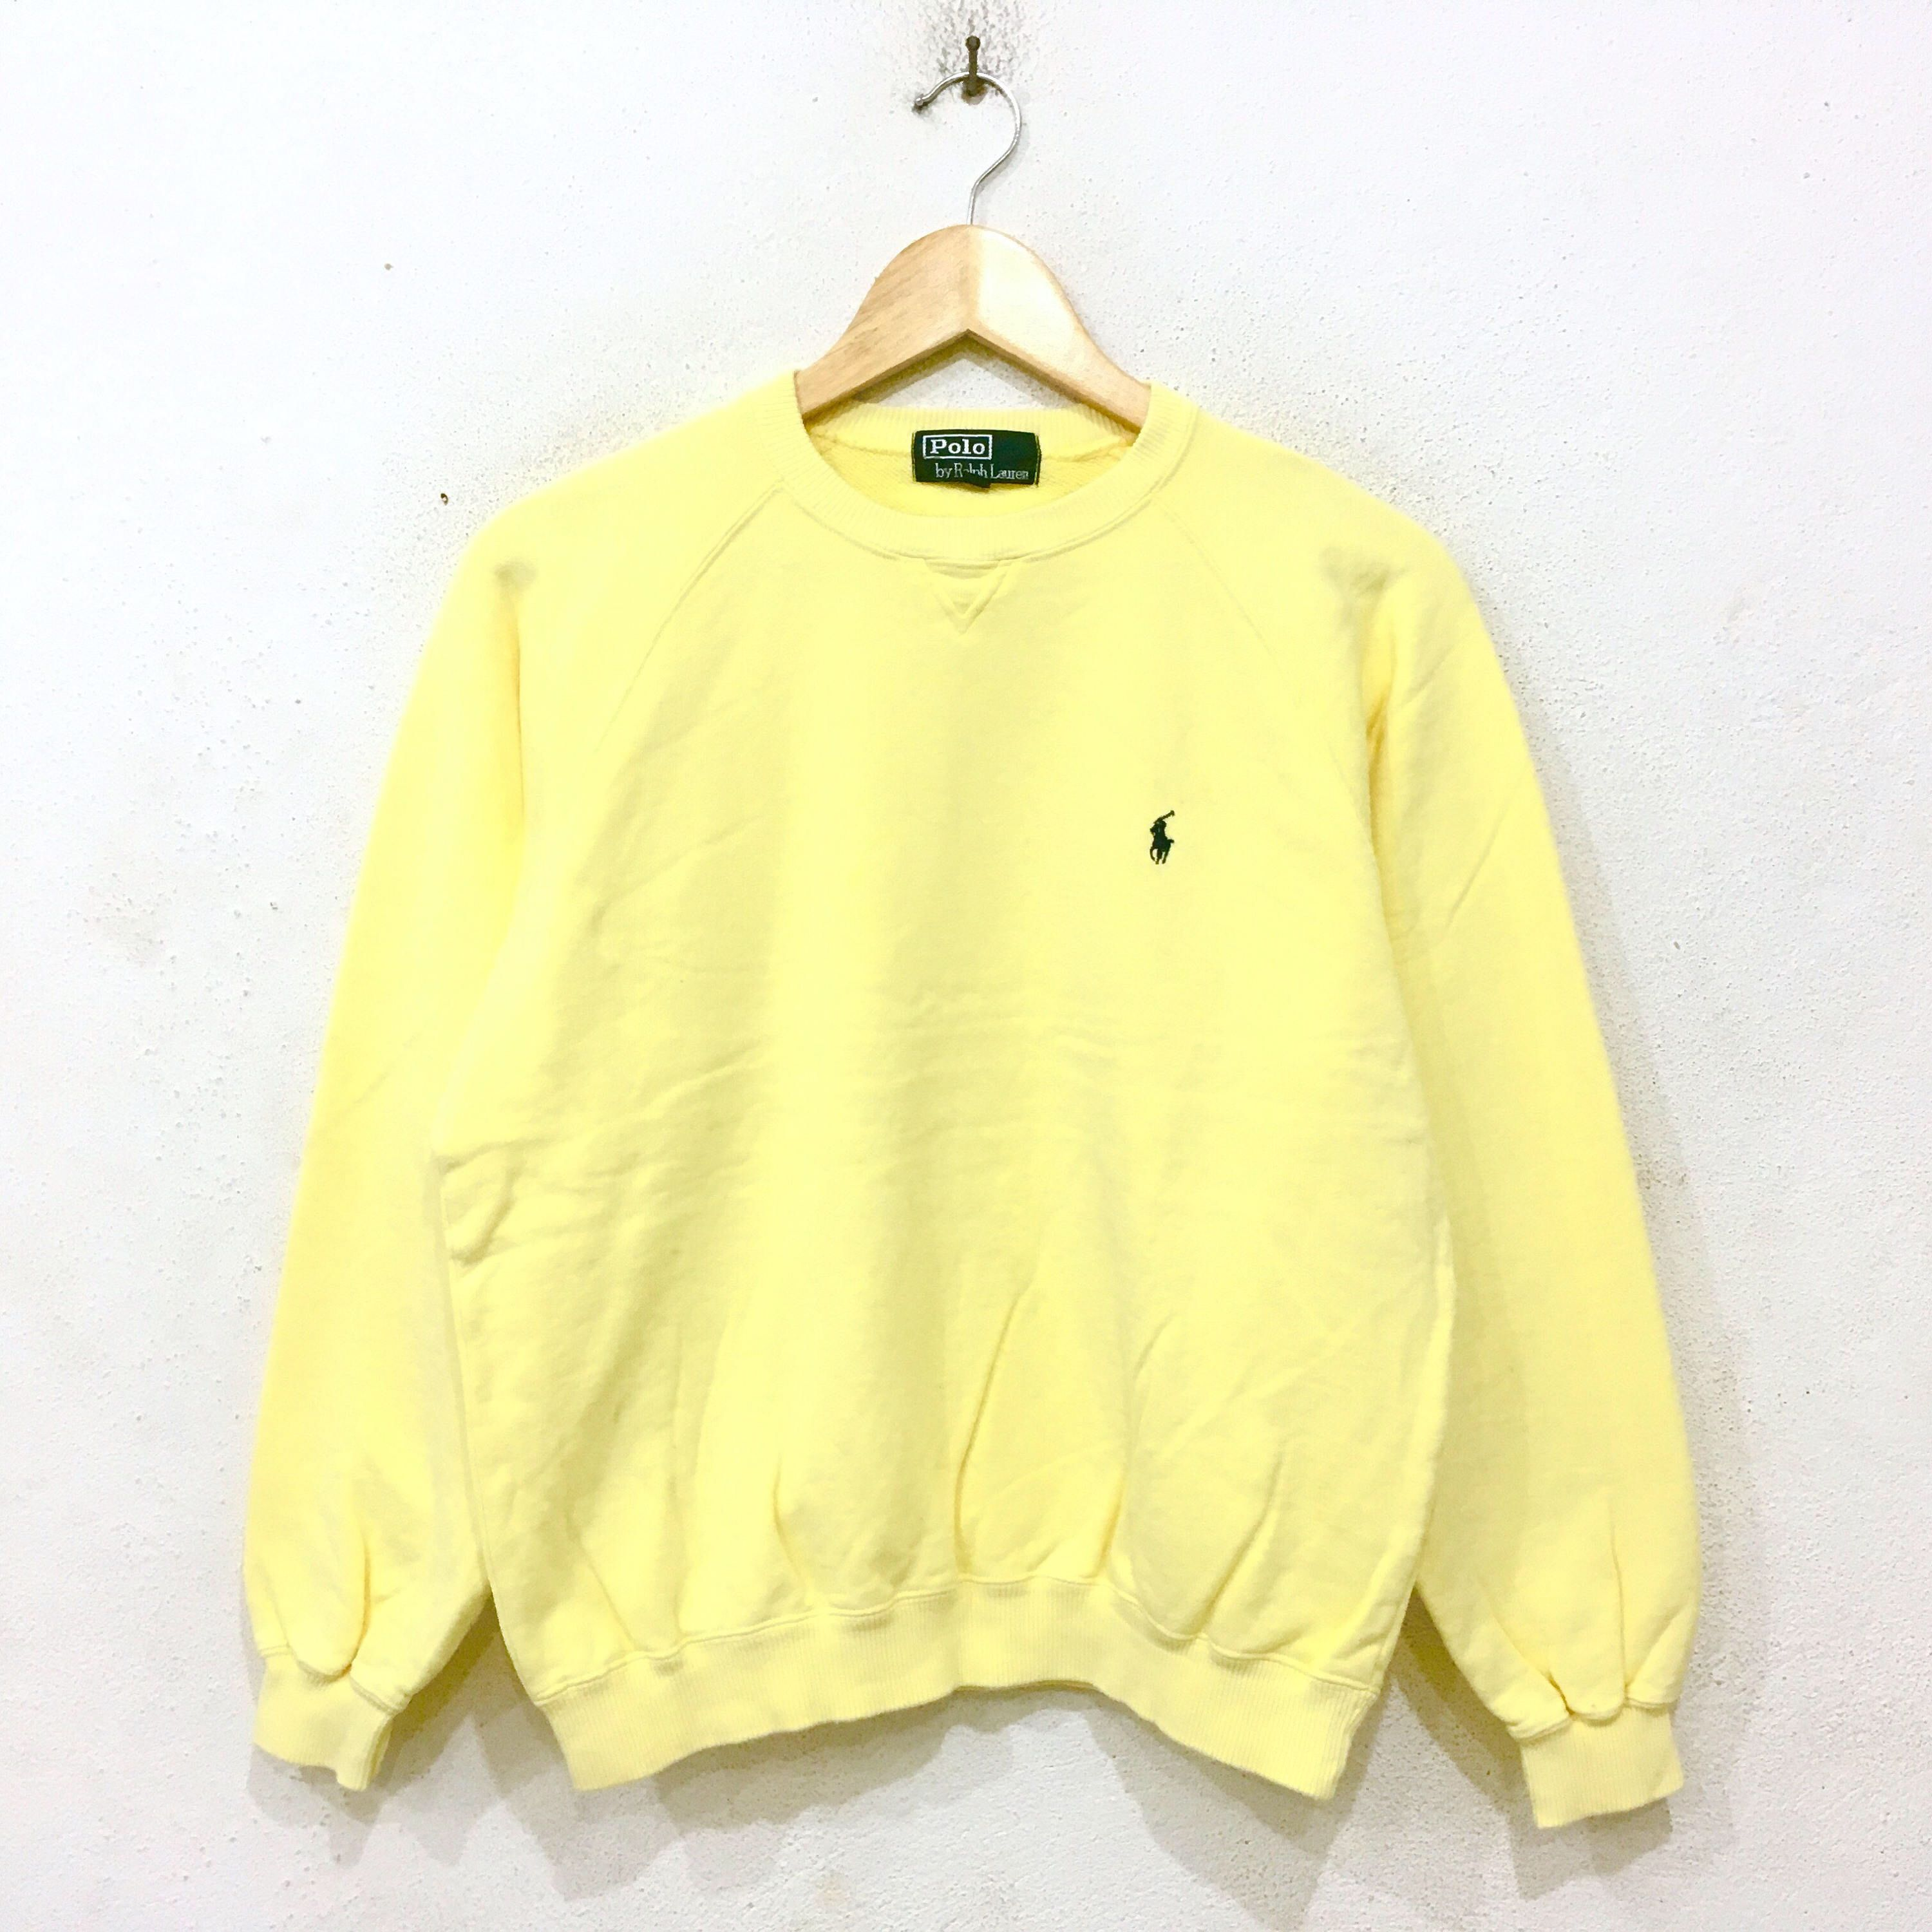 Large size Polo by Ralph Lauren small pony sweatshirt / jumper / polo sport / polo sweater hhUkt8GSHj